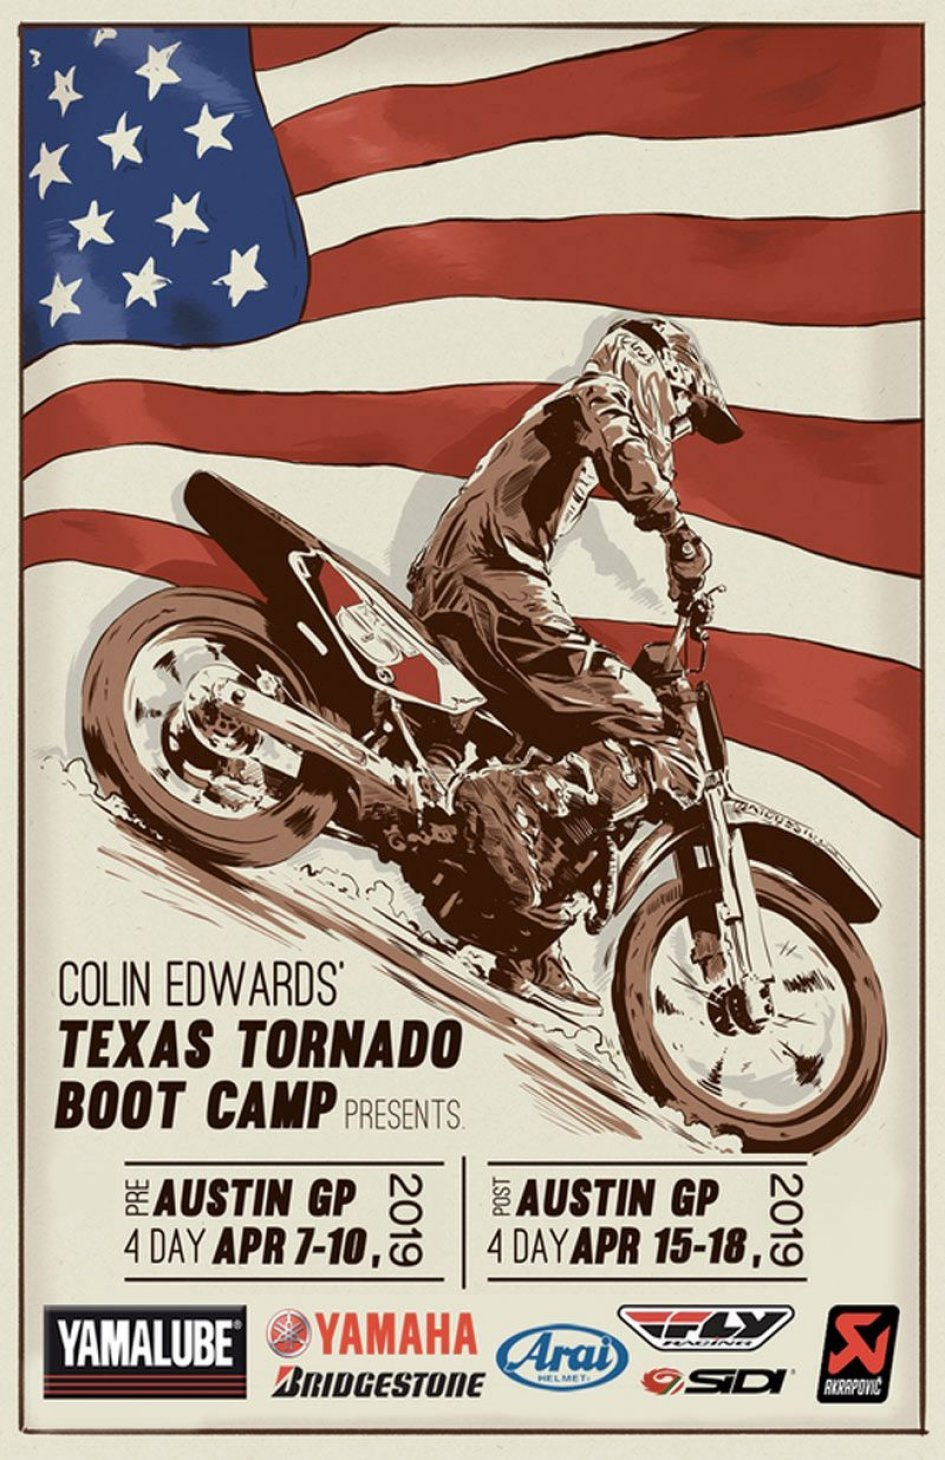 News: Colin Edwards' Texas Tornado Boot Camp announces 2019 Schedule